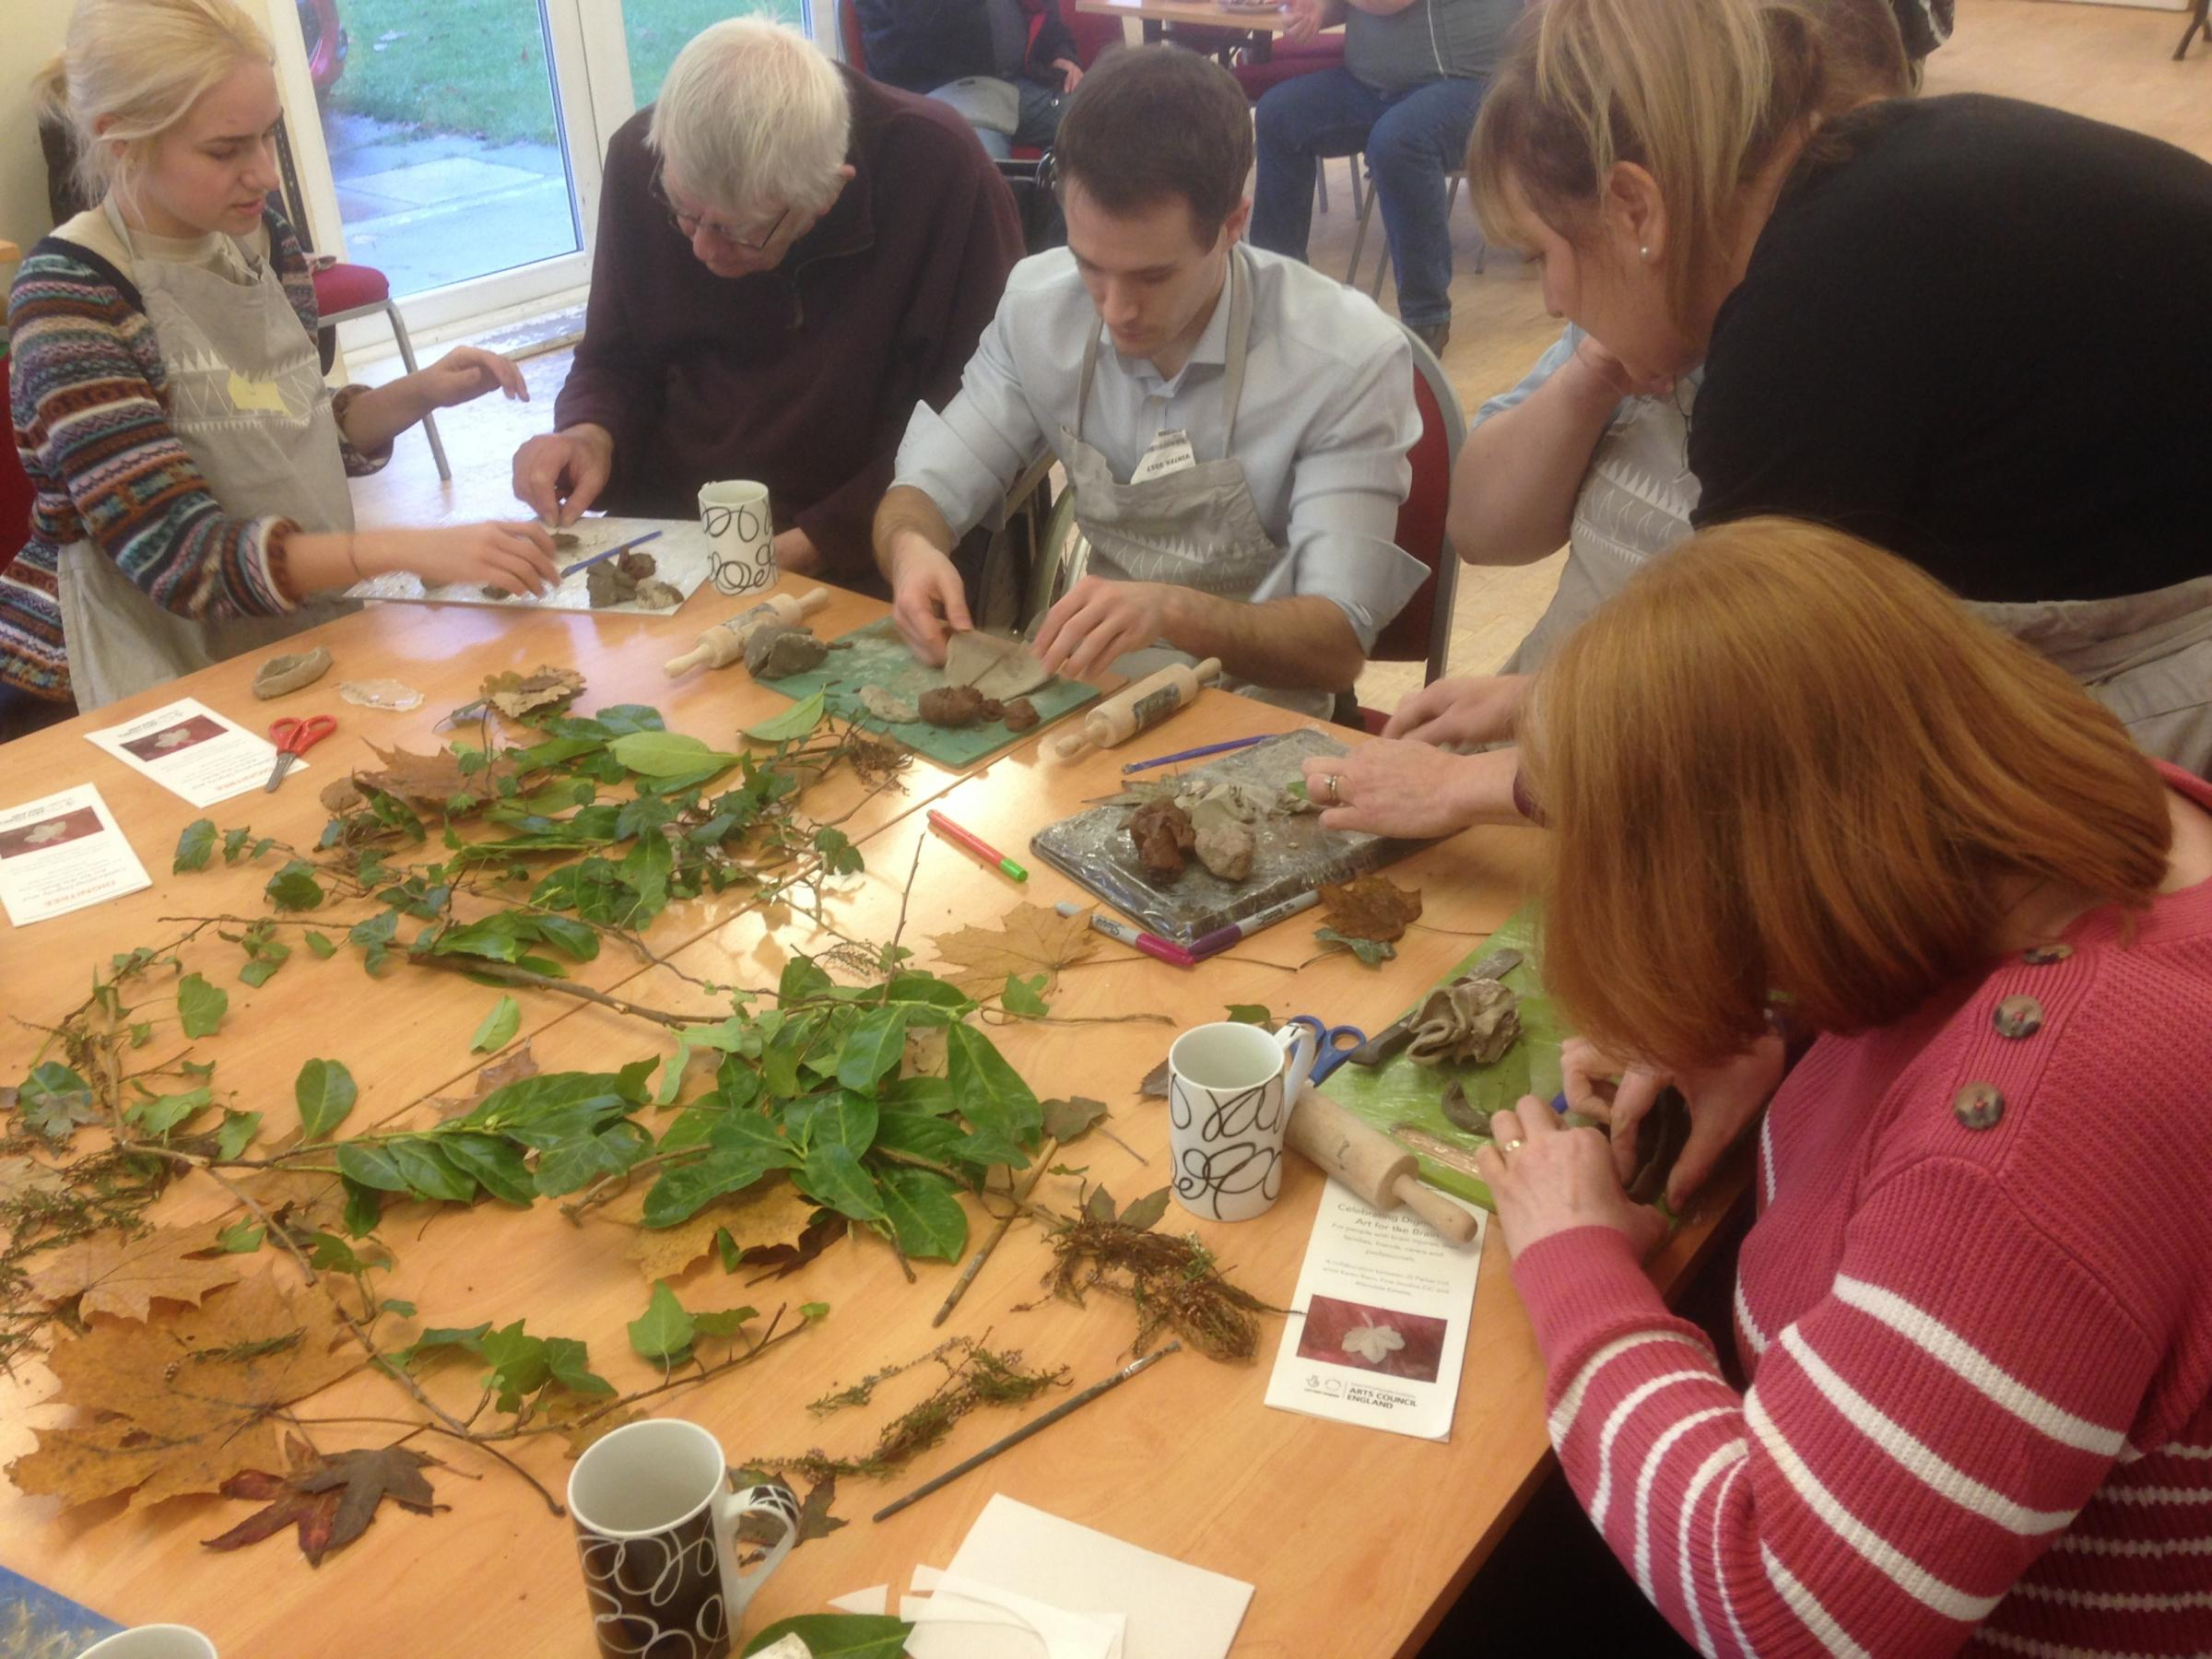 Dignitree art project. Creating the art instillation for Dignity Day at Bywell Hall.